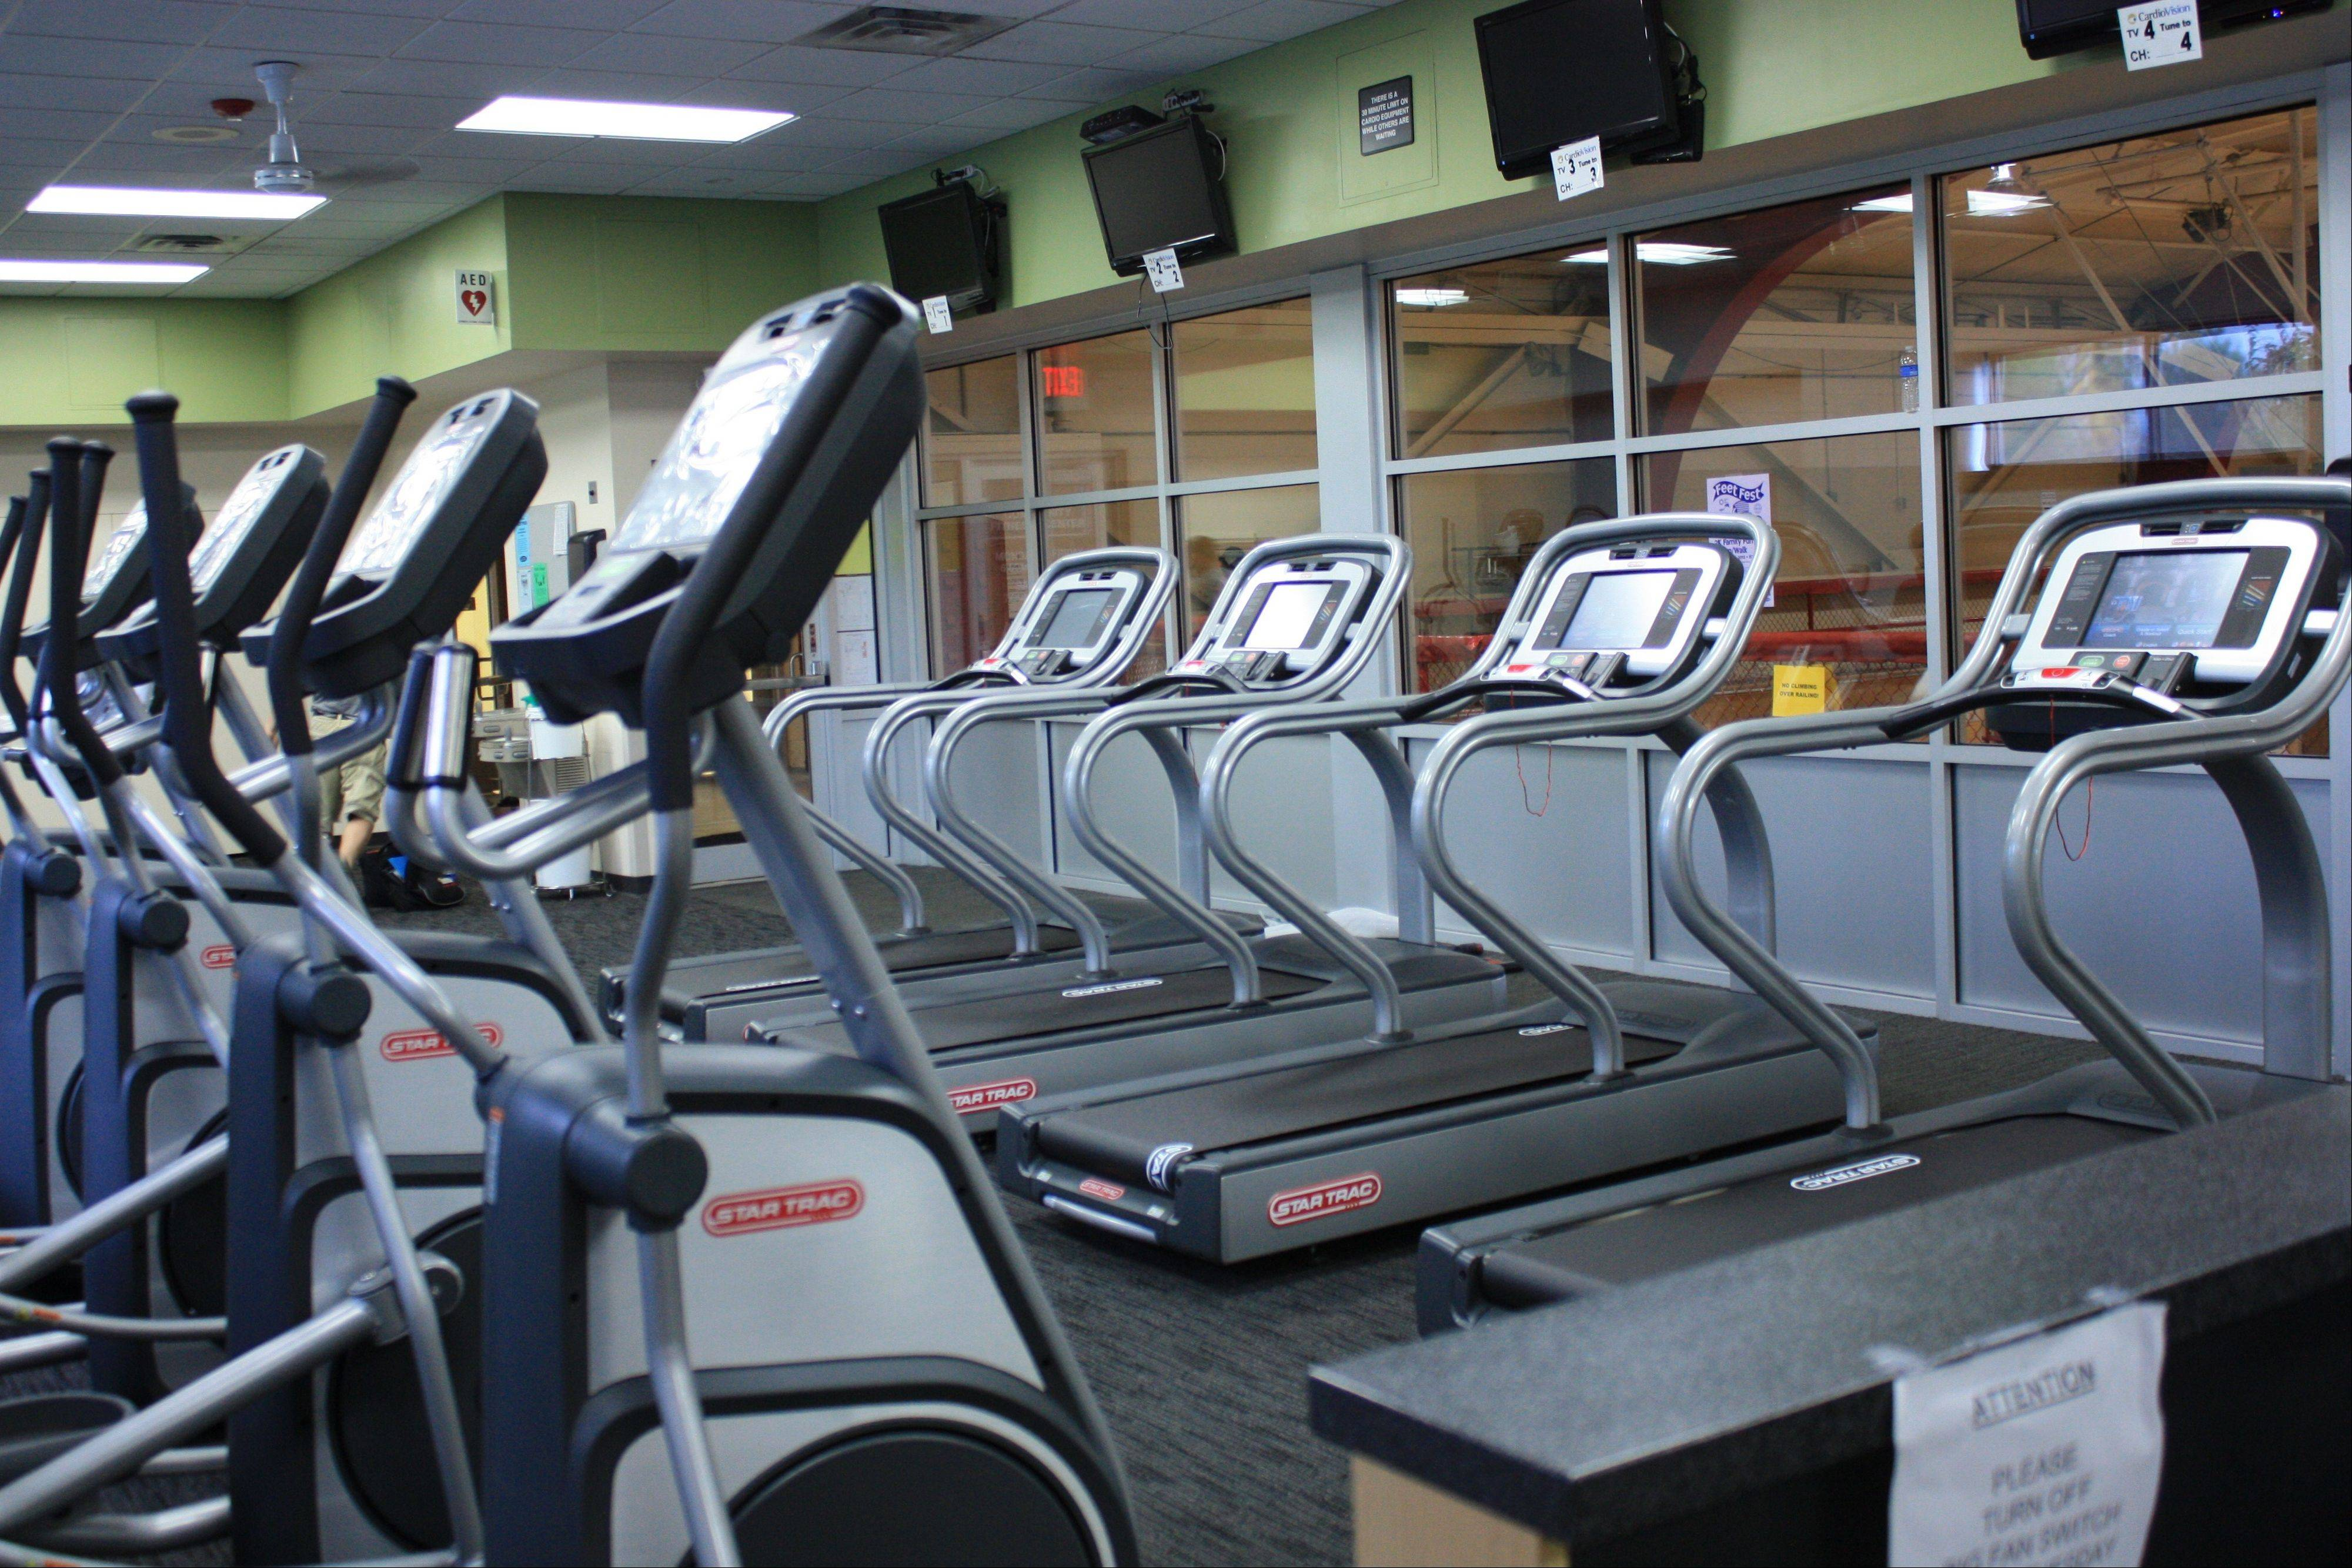 The Palatine Park District's Community Fitness Center holds an Open House from 9 a.m. to 3 p.m. on Saturday, Dec. 8, at 250 E. Wood St. Activities include screenings, fitness demonstrations, equipment orientations, giveaways and raffles.